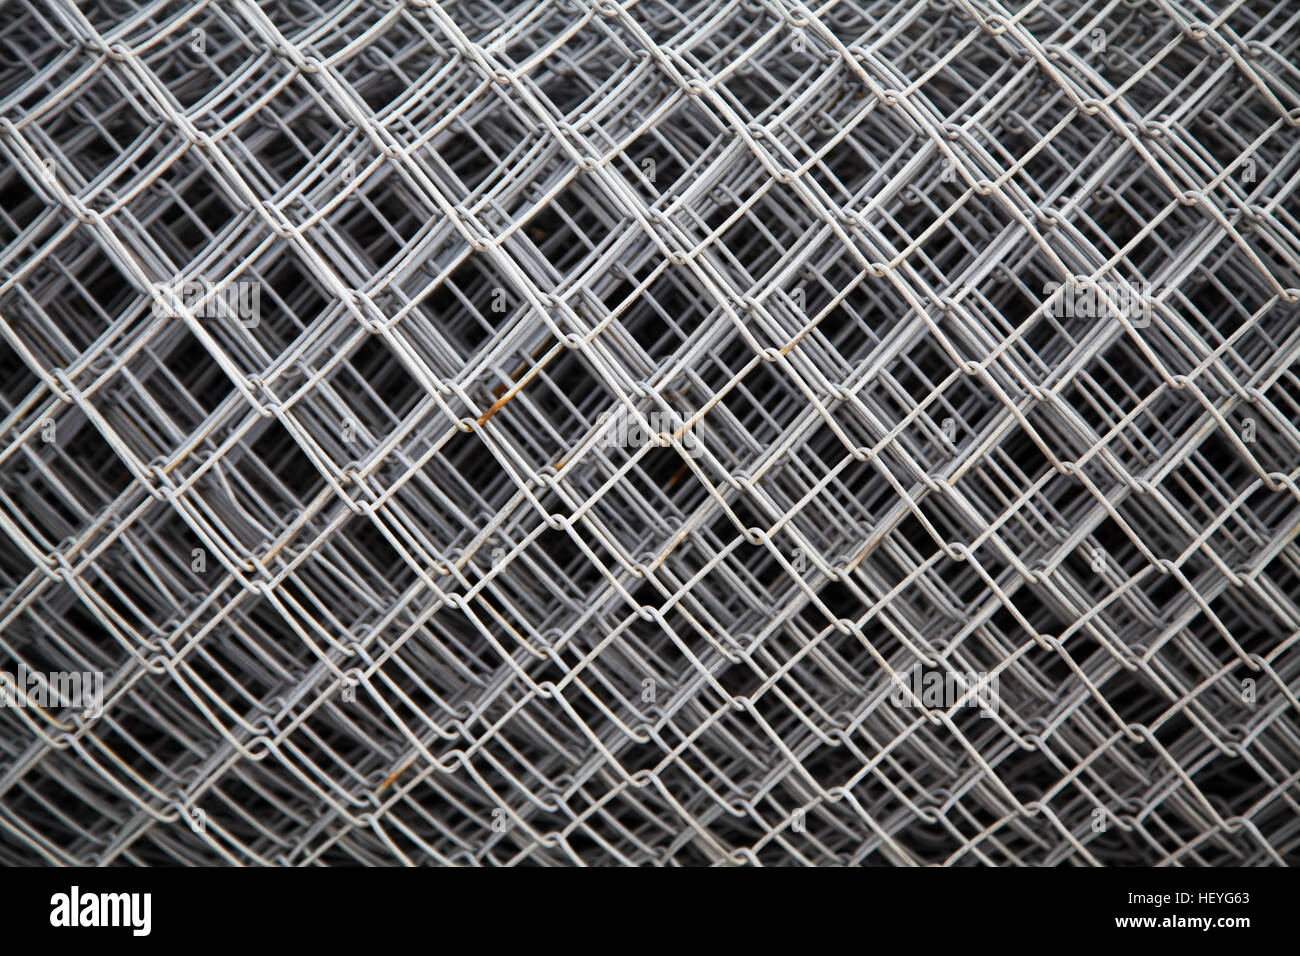 Diamond Mesh Fence Stock Photos & Diamond Mesh Fence Stock Images ...